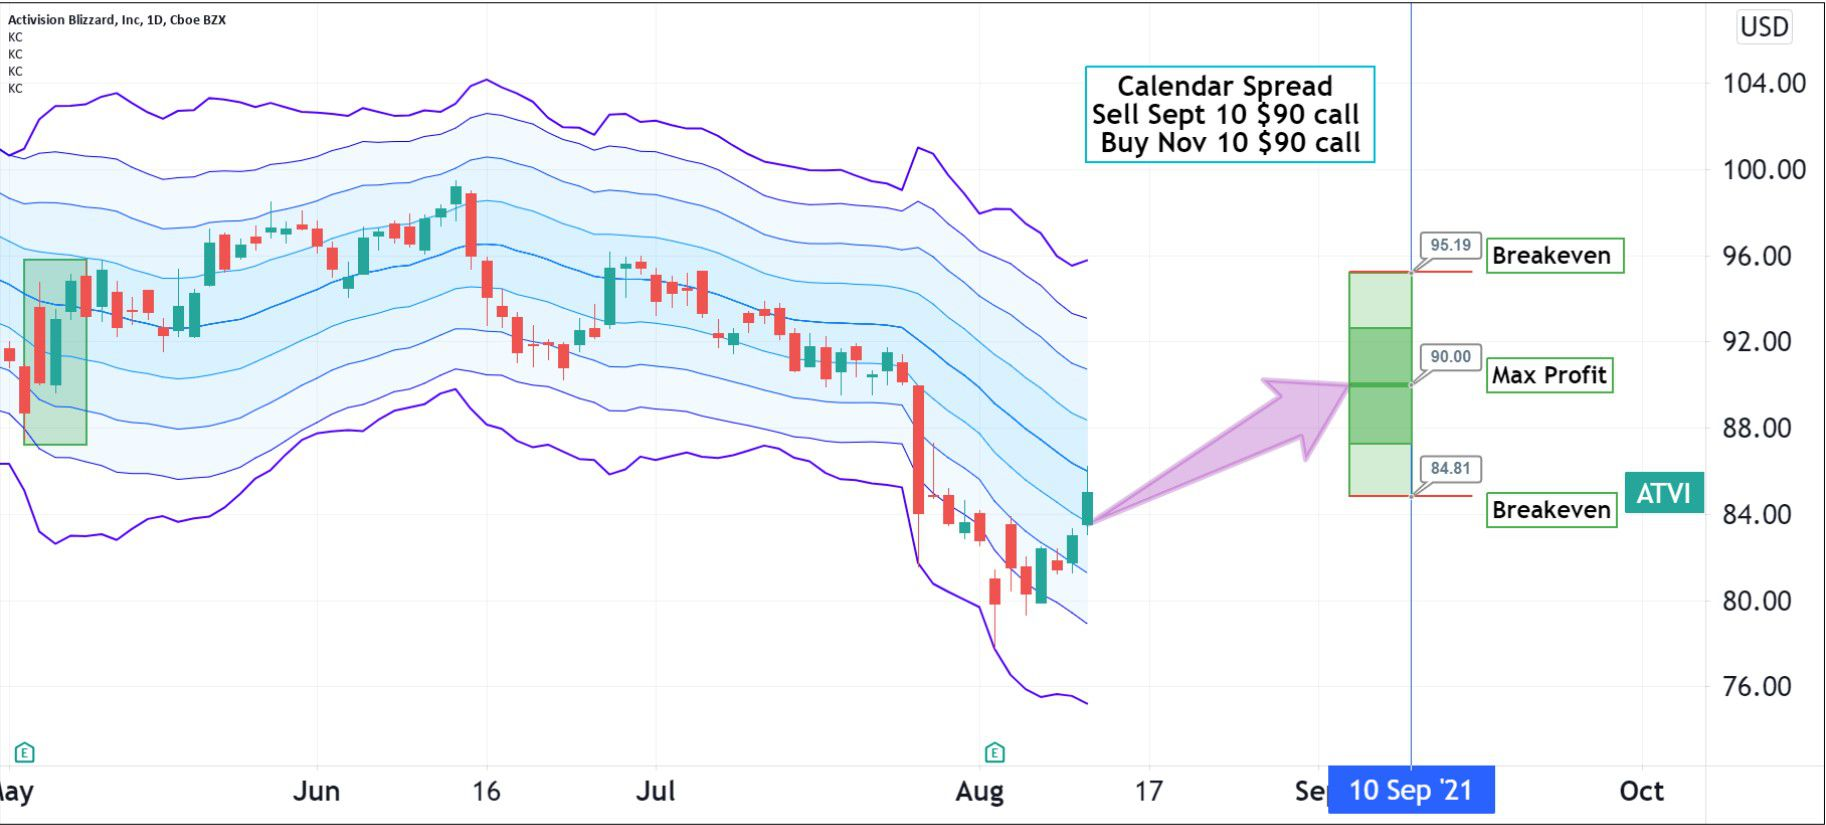 Trading example for Activision Blizzard, Inc. (ATVI)